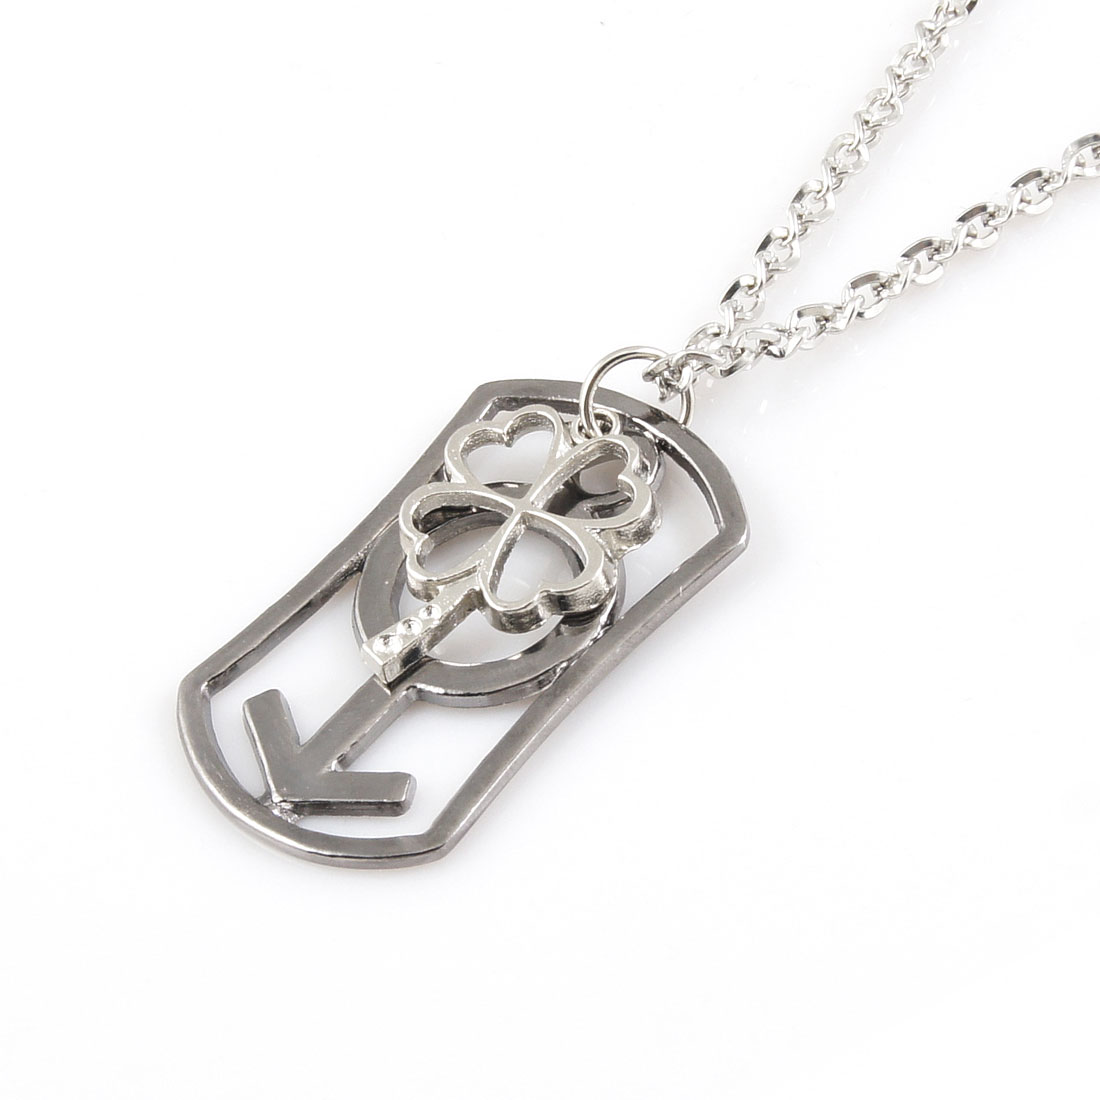 Silver Tone Alloy Male Symbol Flower Pendant Chocker Necklace Lover Gift